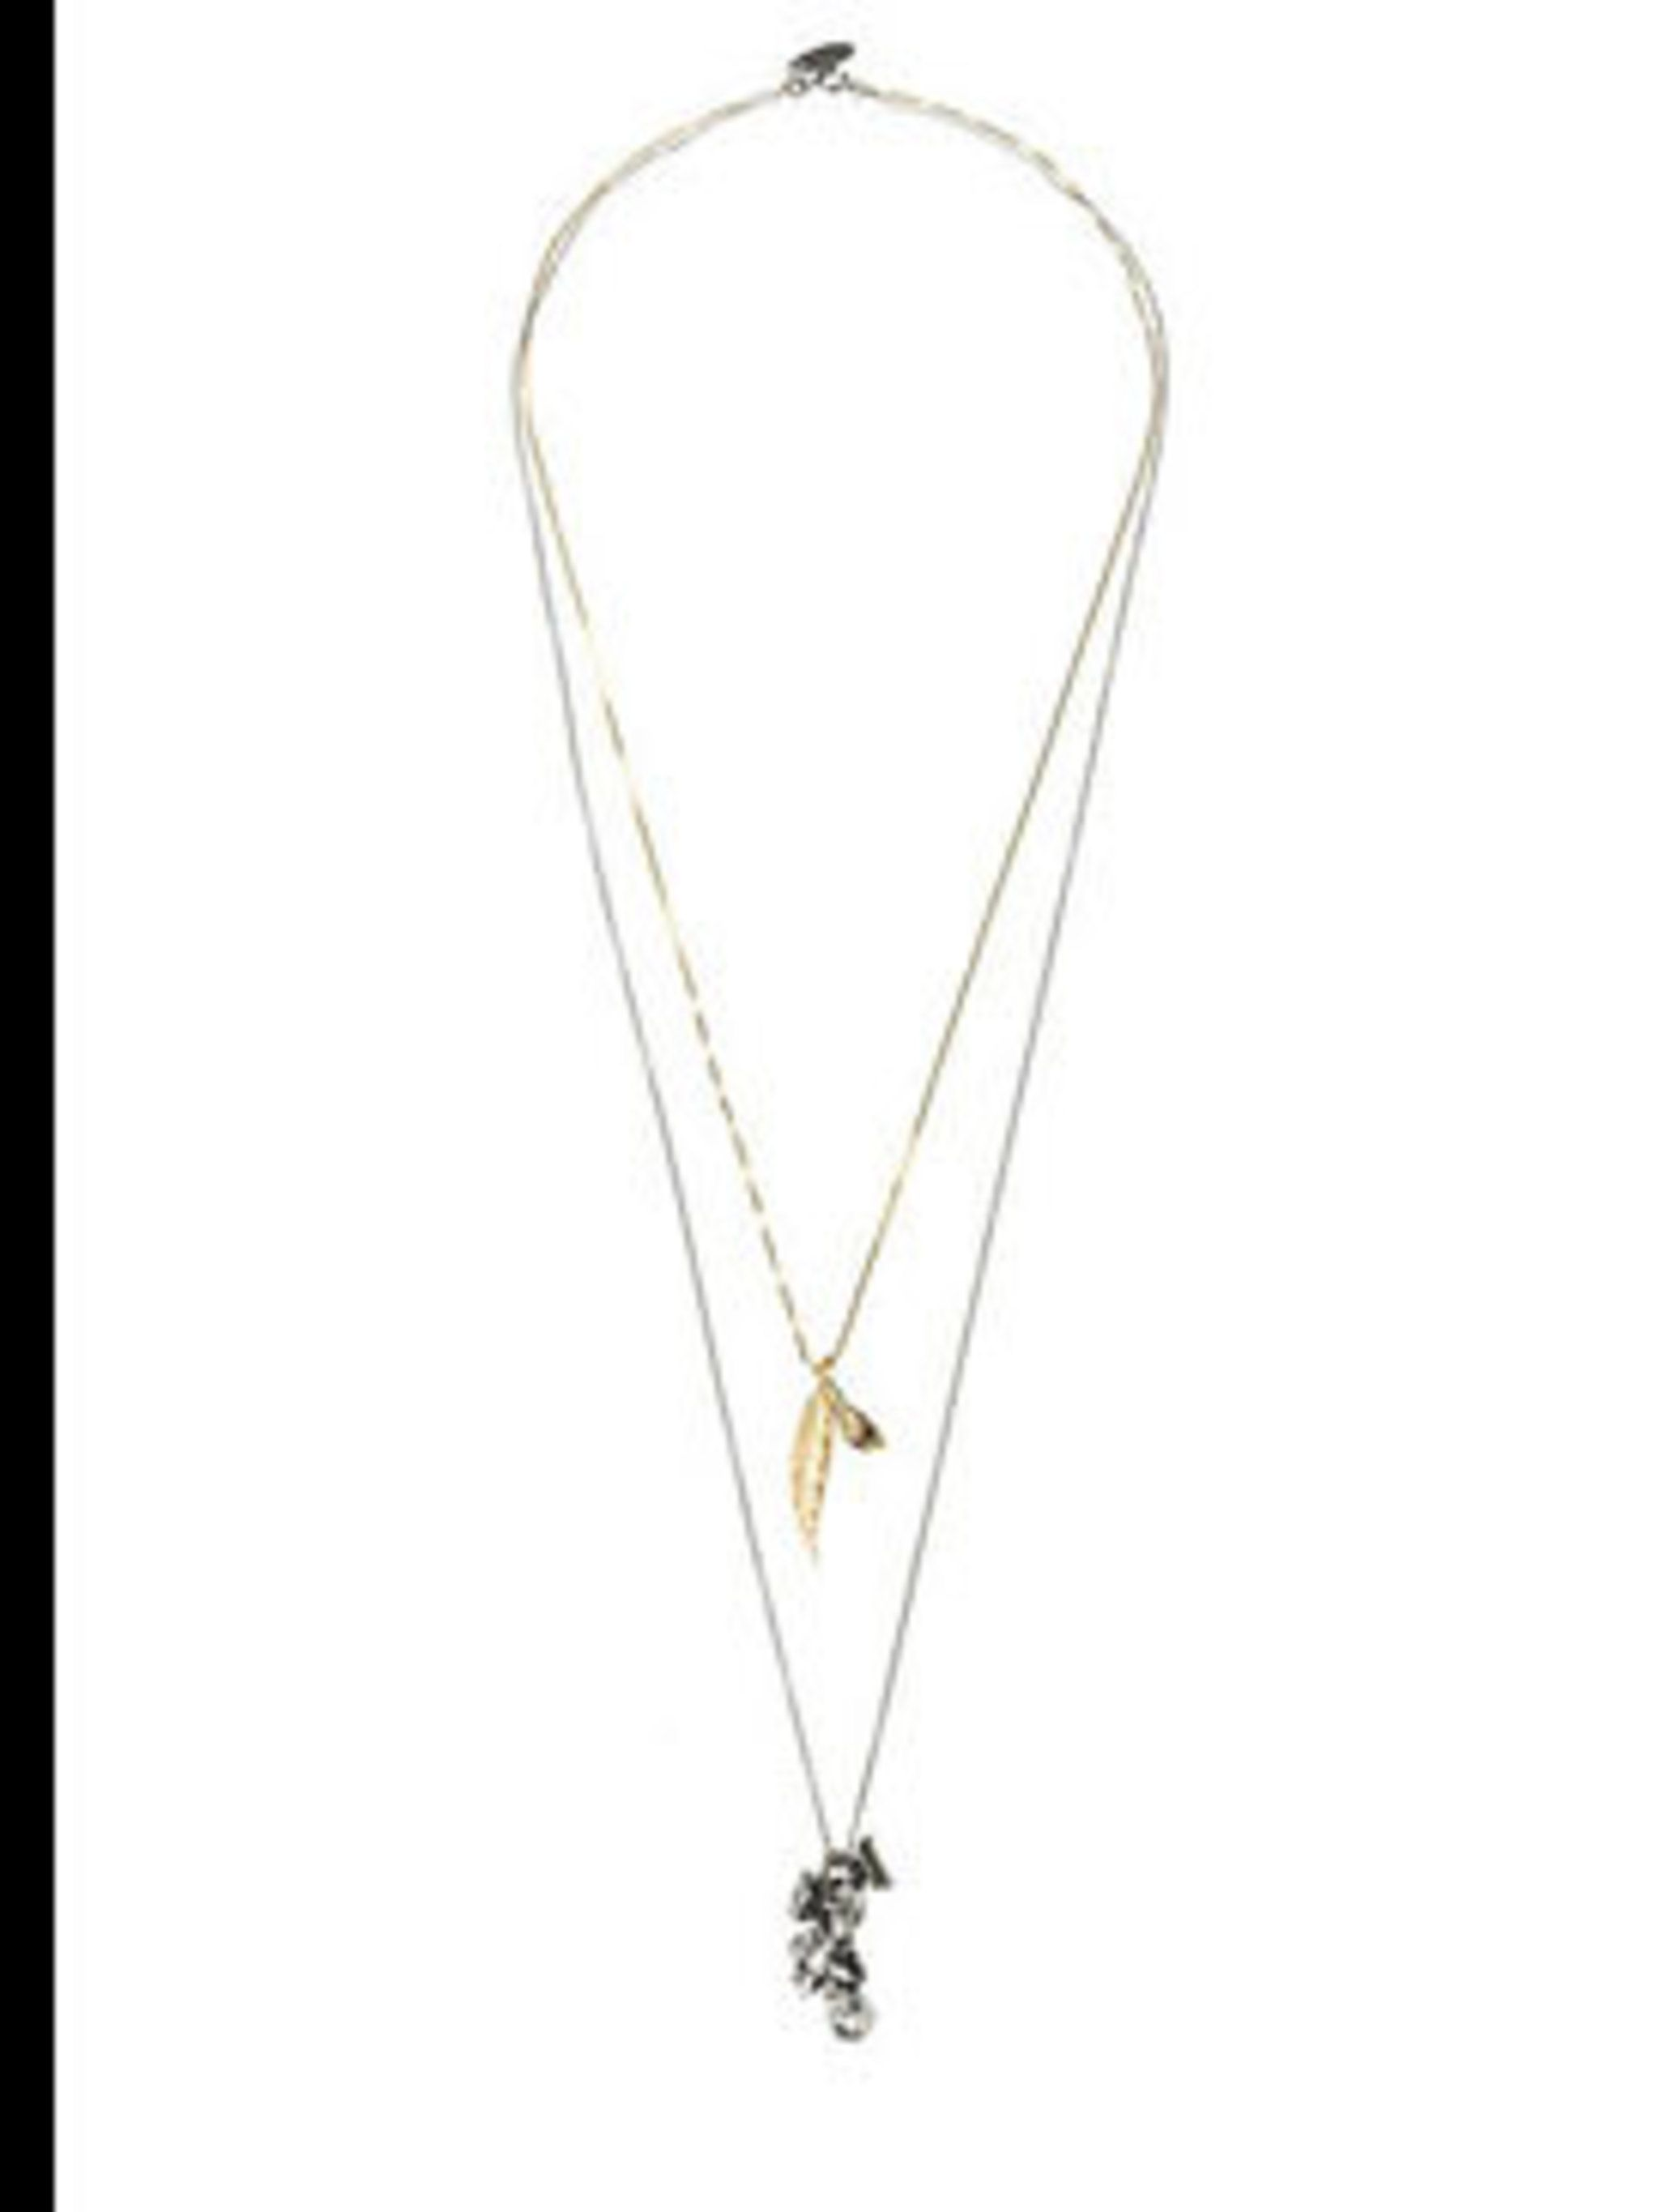 """<p>Double strand feather necklace, £166, by Iosselliani at <a href=""""http://www.lagarconne.com/store/item.htm?itemid=4309&amp&#x3B;sid=358&amp&#x3B;pid=204"""">La Garconne</a></p>"""